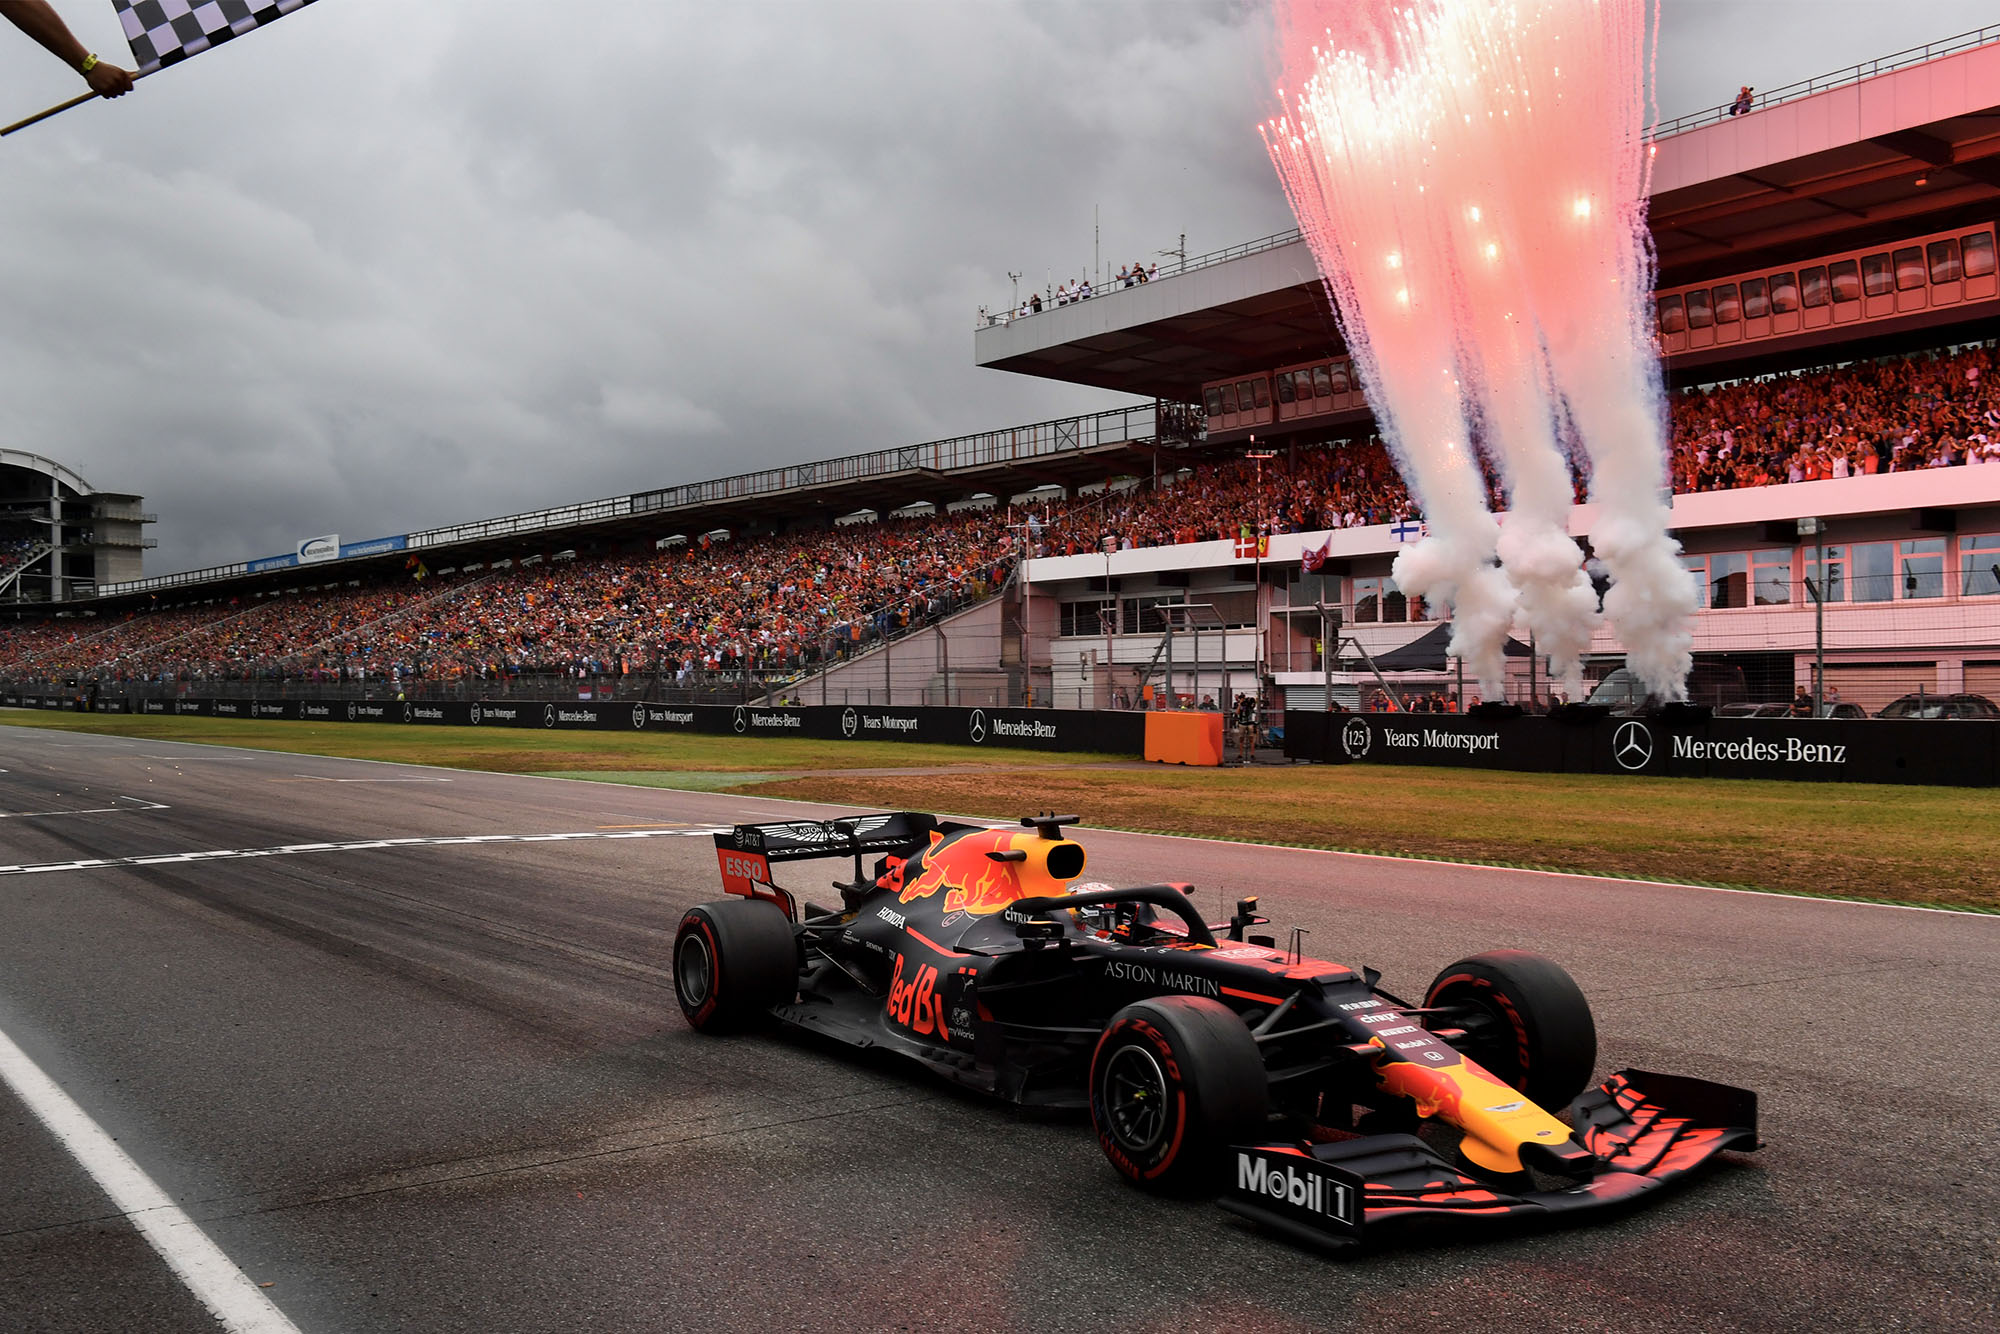 Max Verstappen crosses the line to win the 2019 German Grand Prix